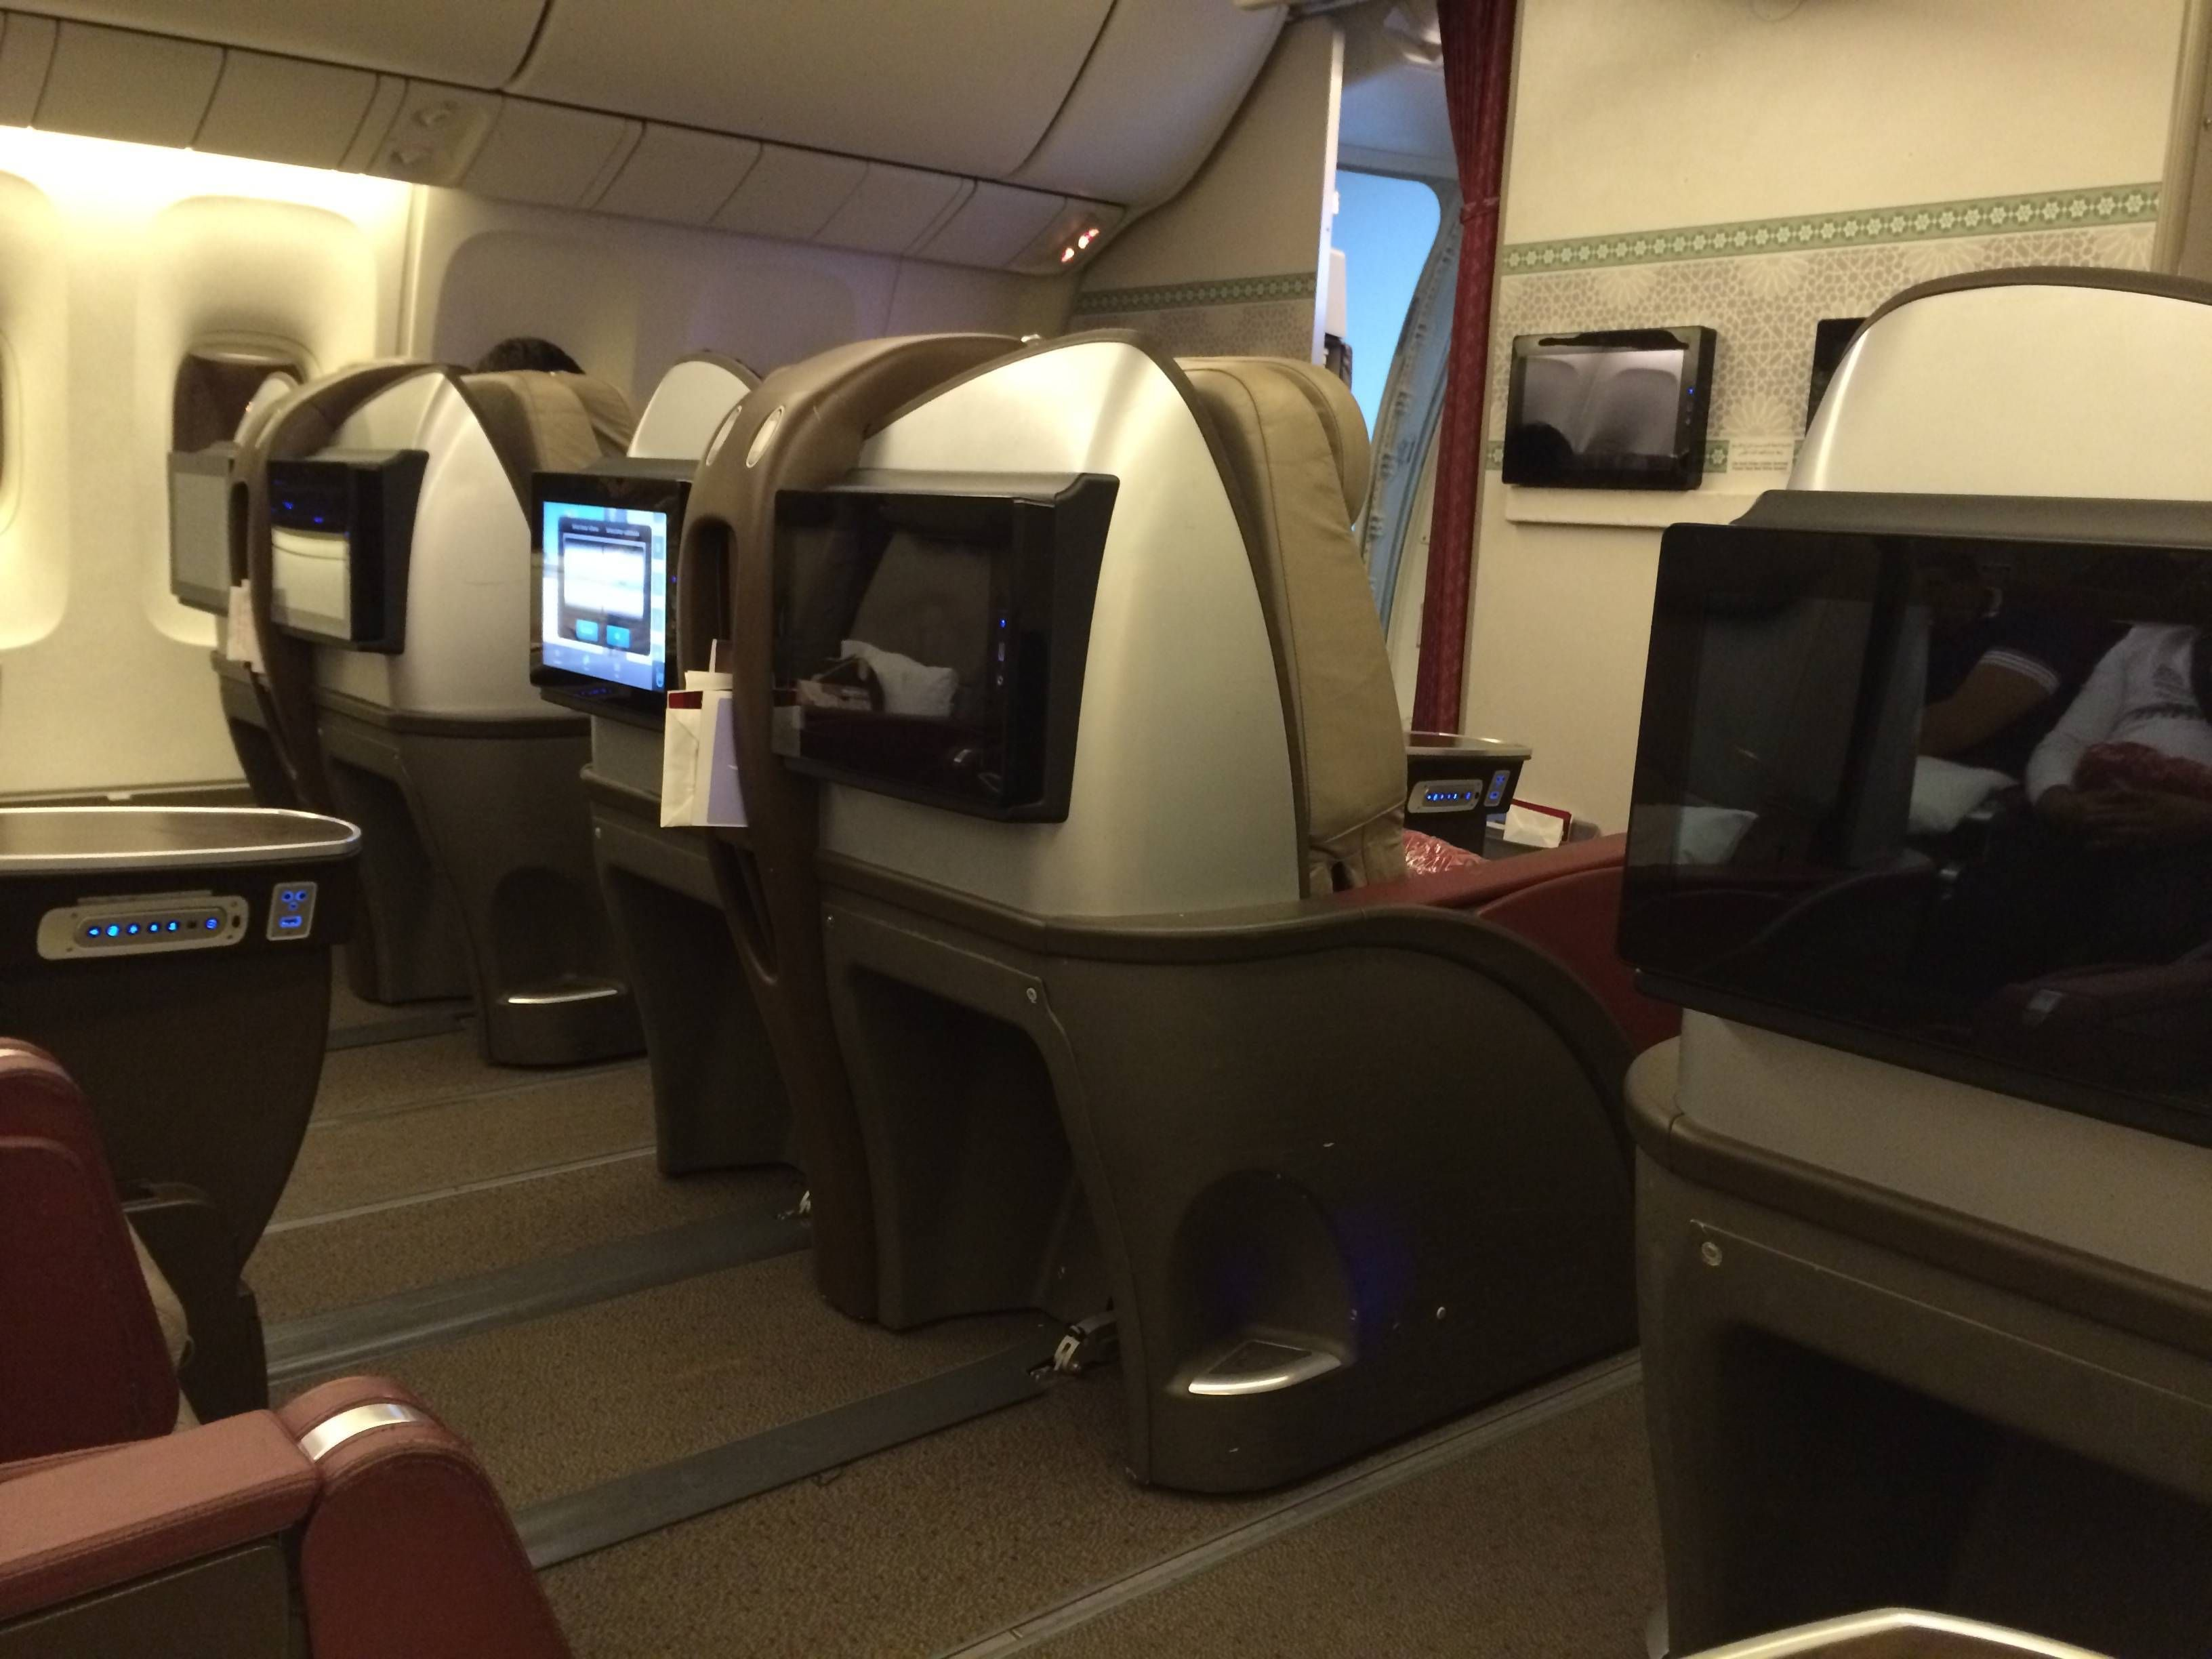 Royal Air Maroc Classe Executiva B767-300 Business Class